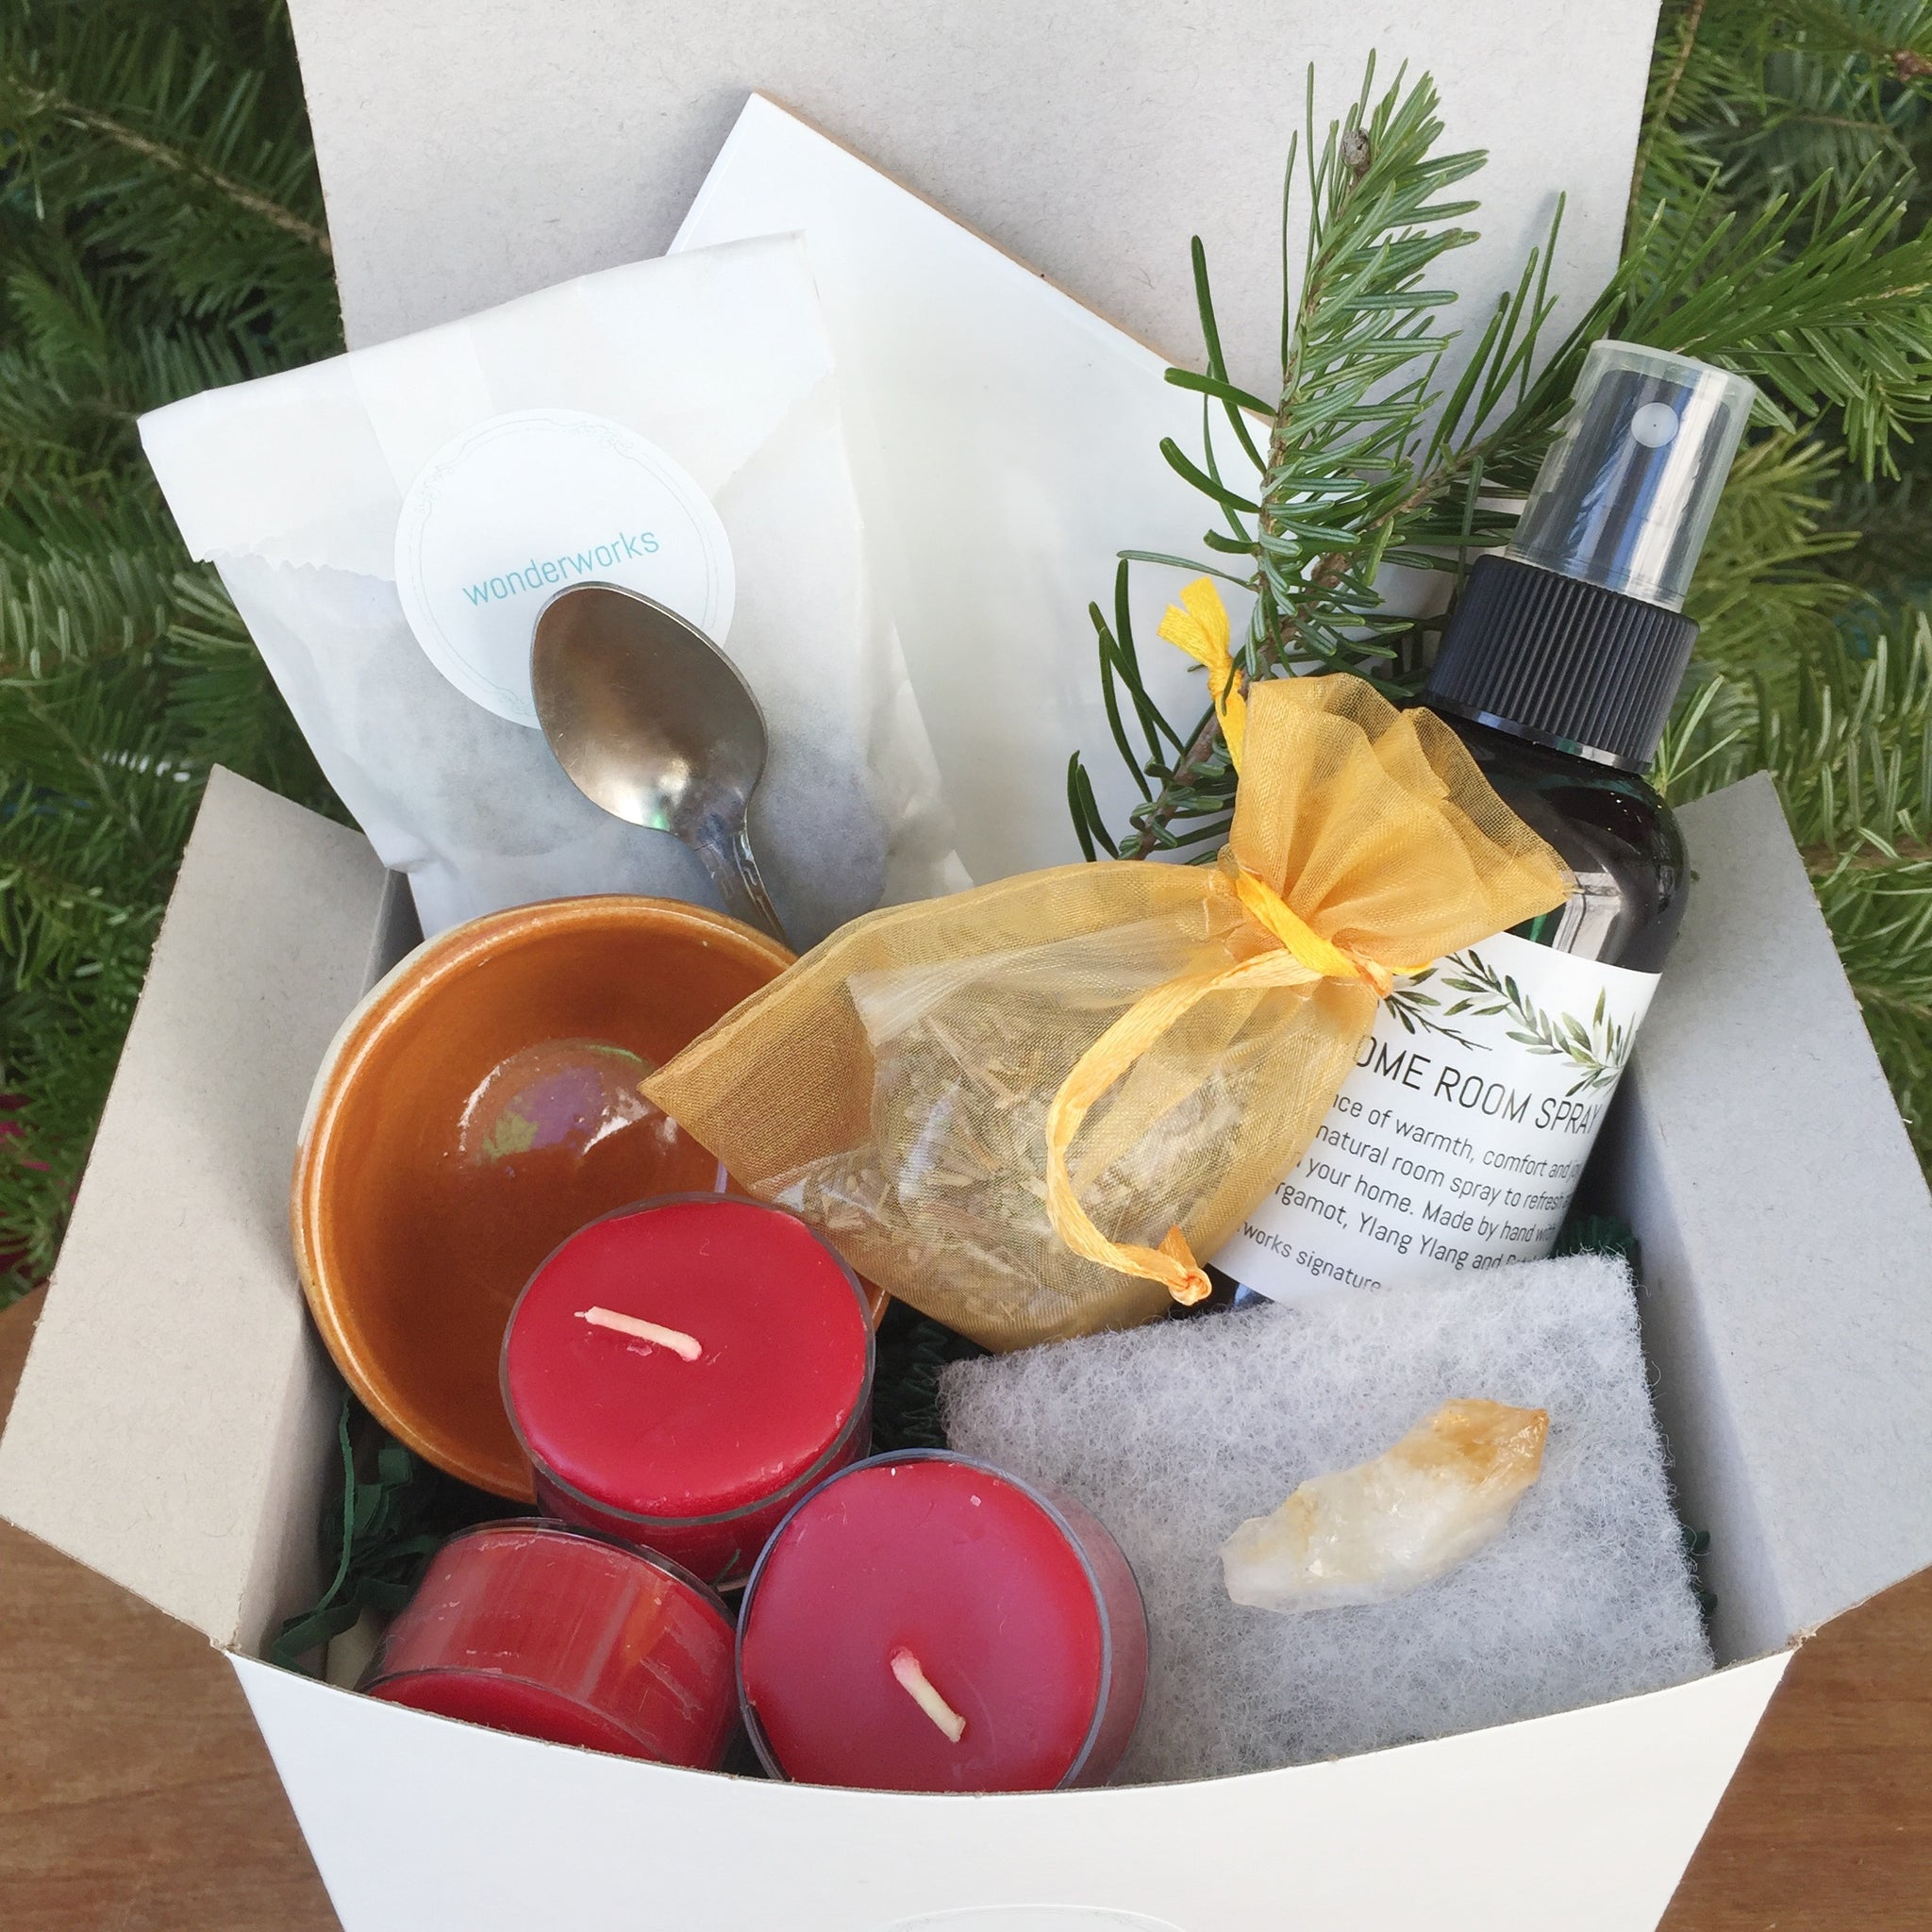 Winter Solstice Ritual Kit Wonderworks